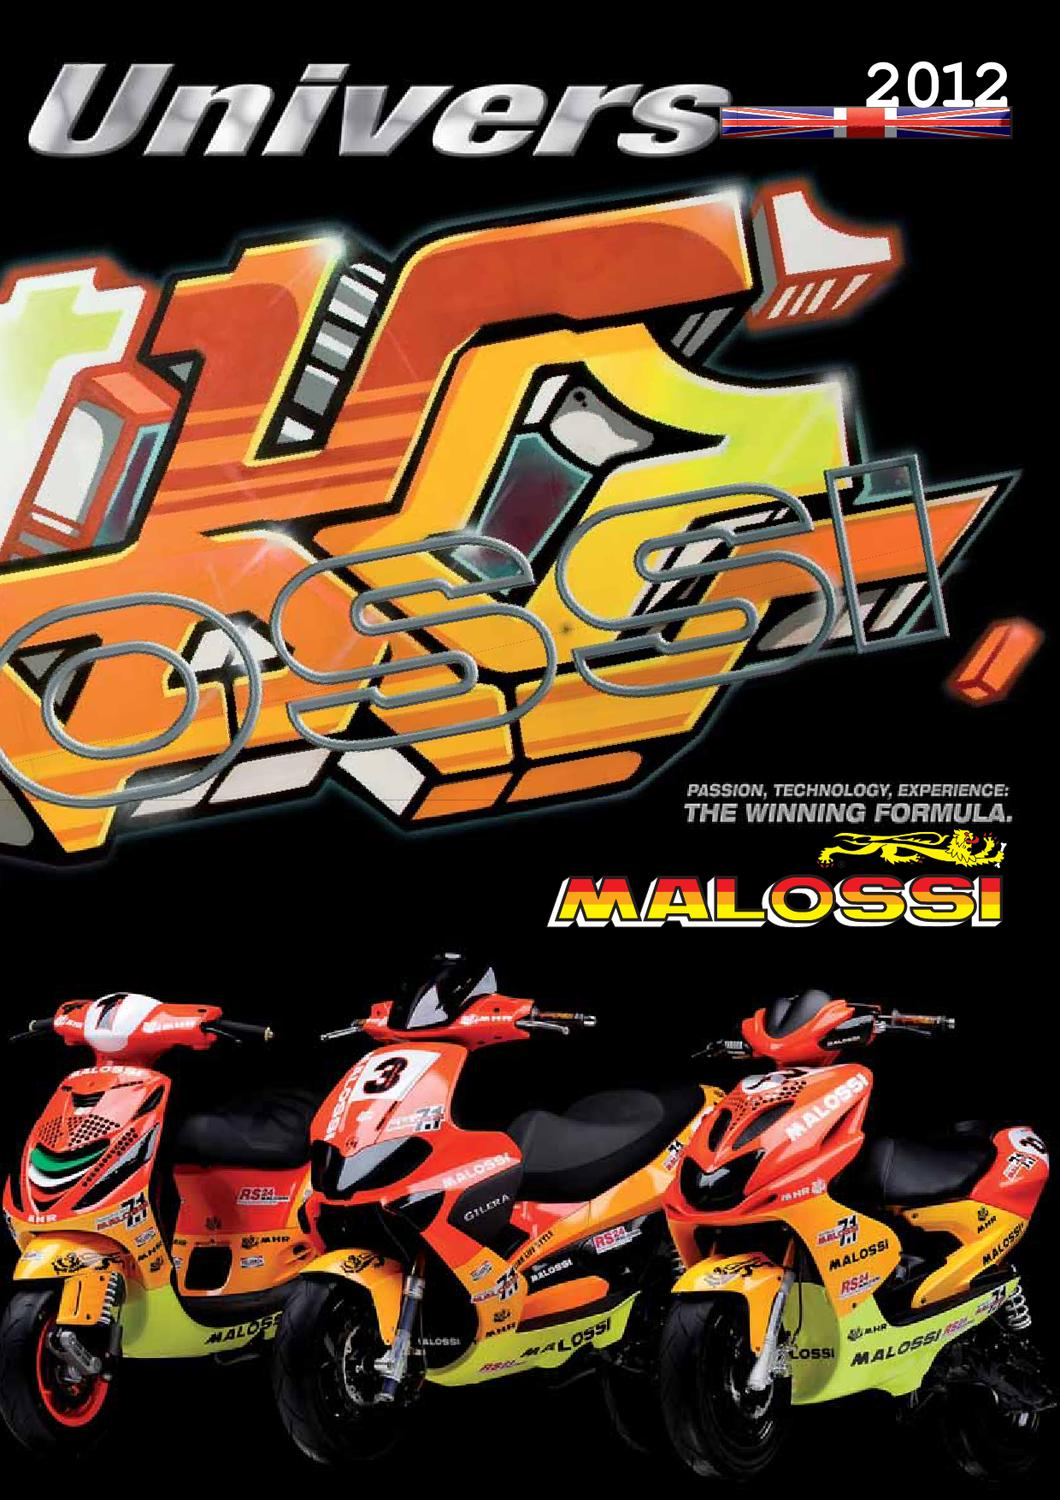 Malossi katalog by MOTOMAXX IZOLA - issuu on